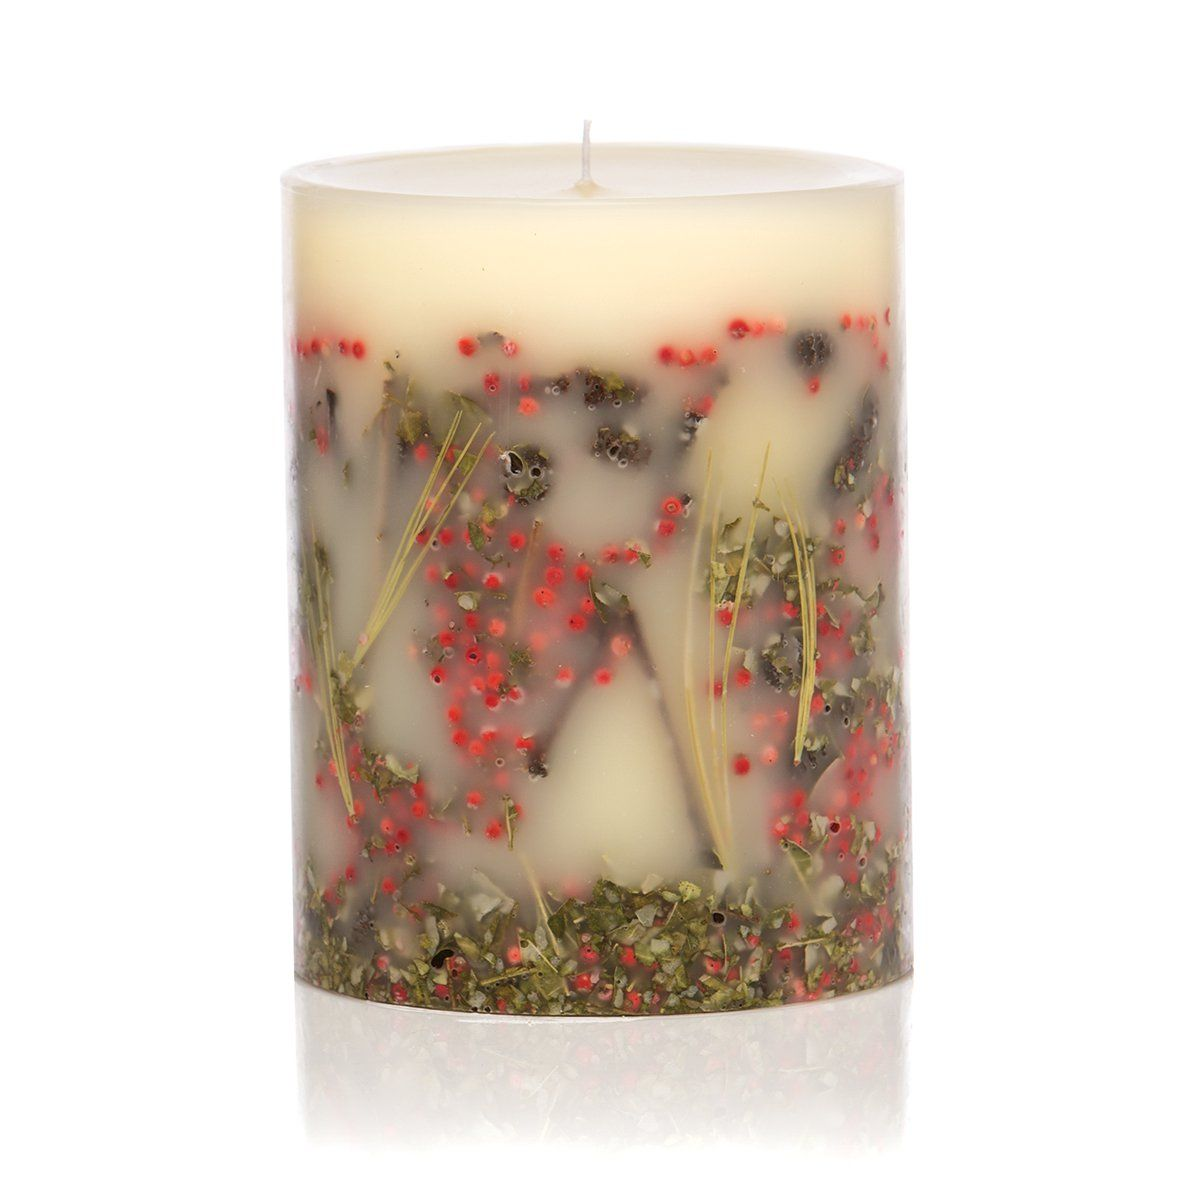 25 Best Christmas Candles For 2018 Lovely Scented Holiday Candles